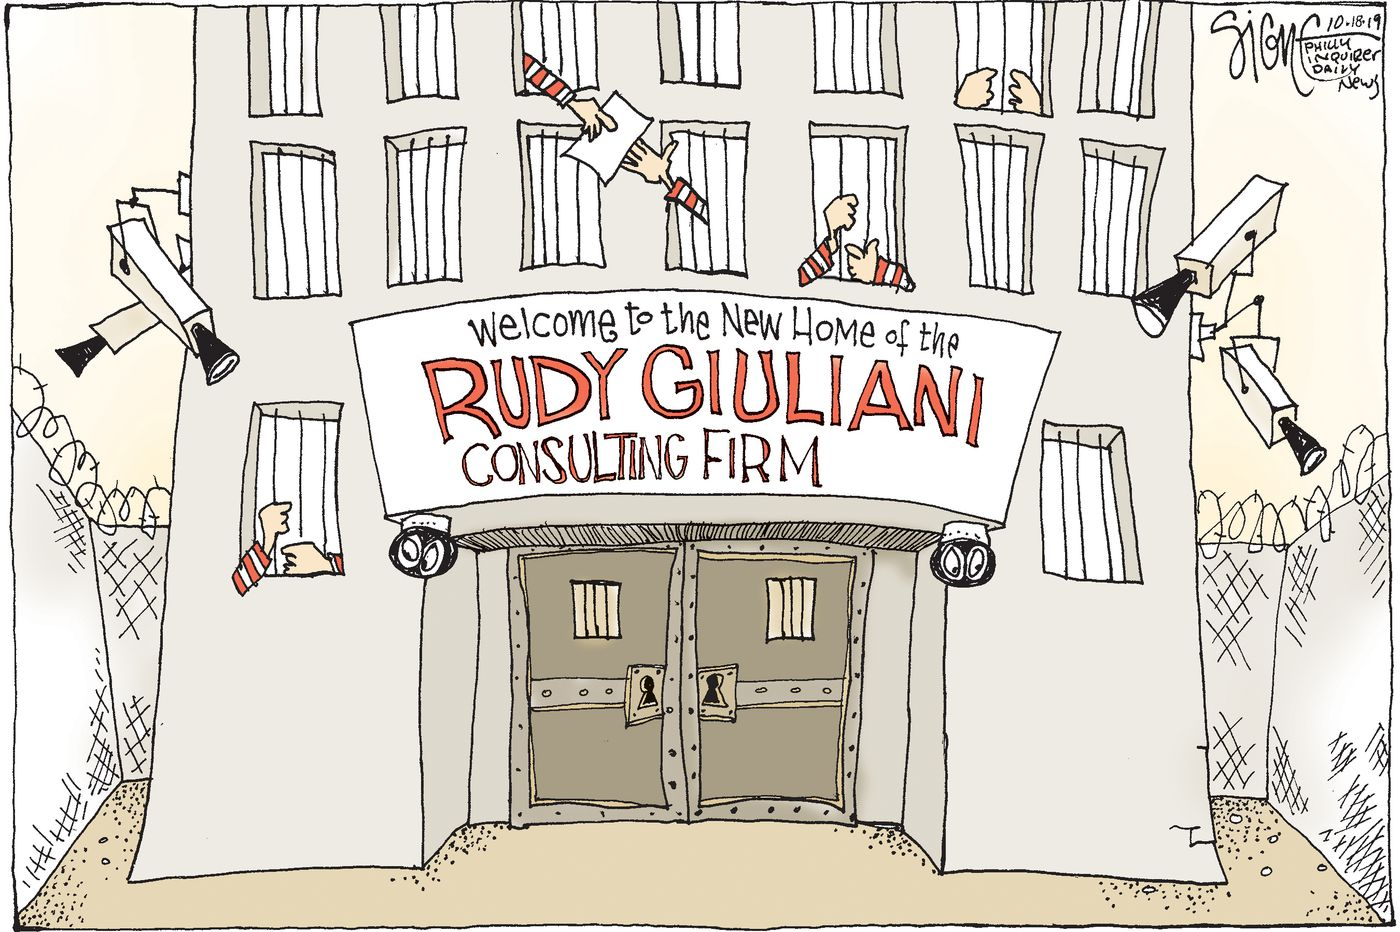 Political Cartoon: Rudy Giuliani relocates